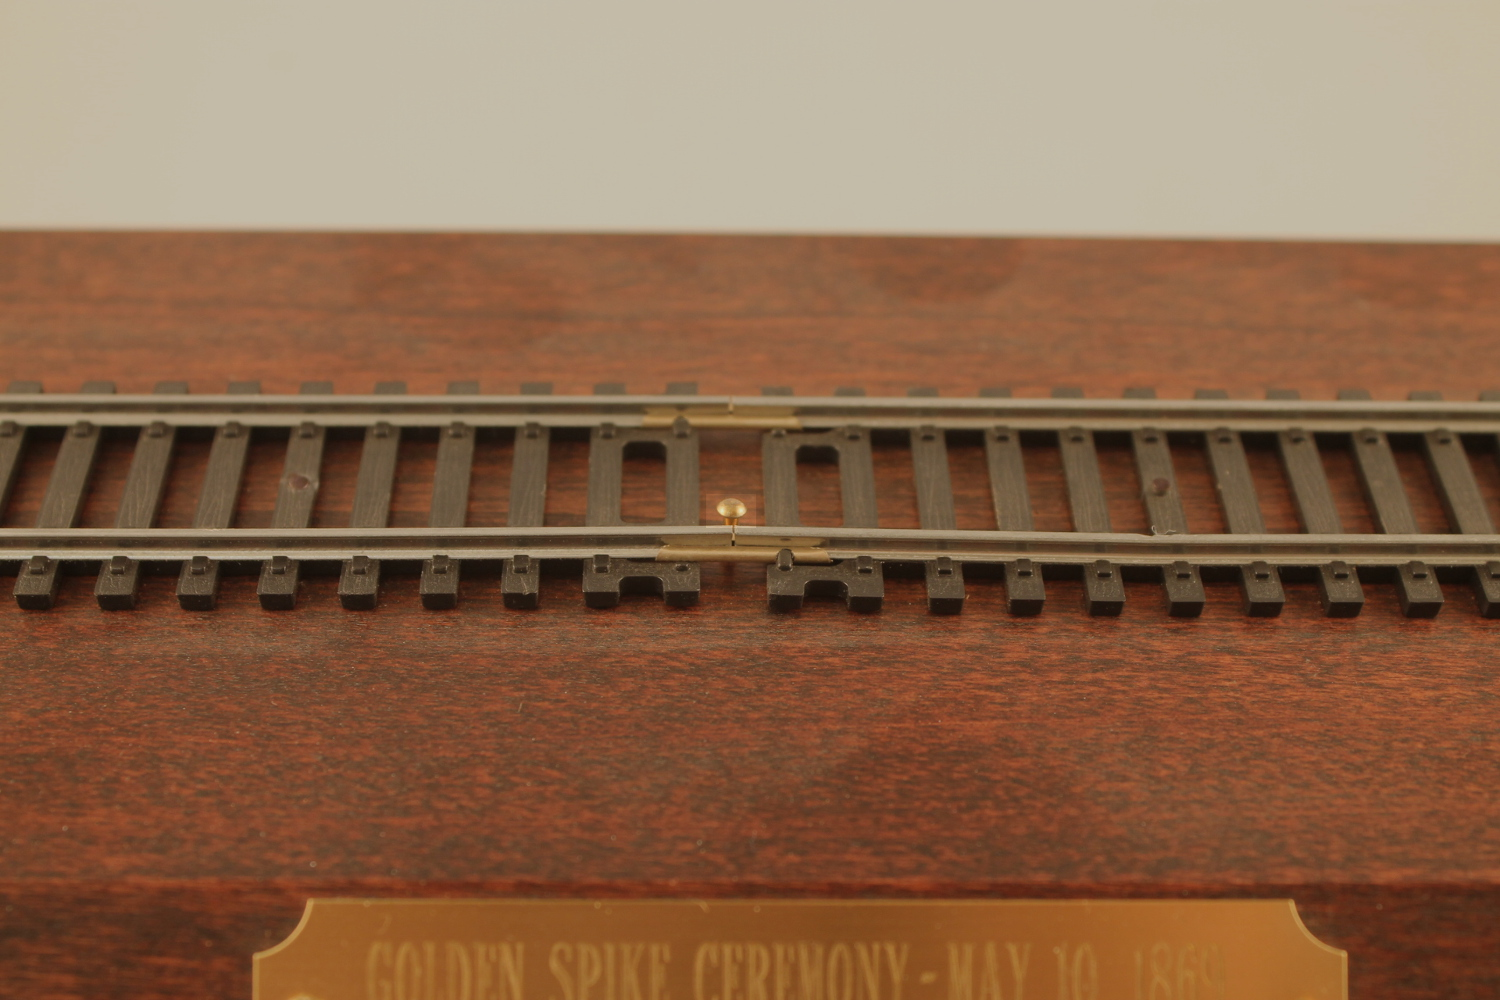 Golden Spike/Transcontinental Display Track HO Scale